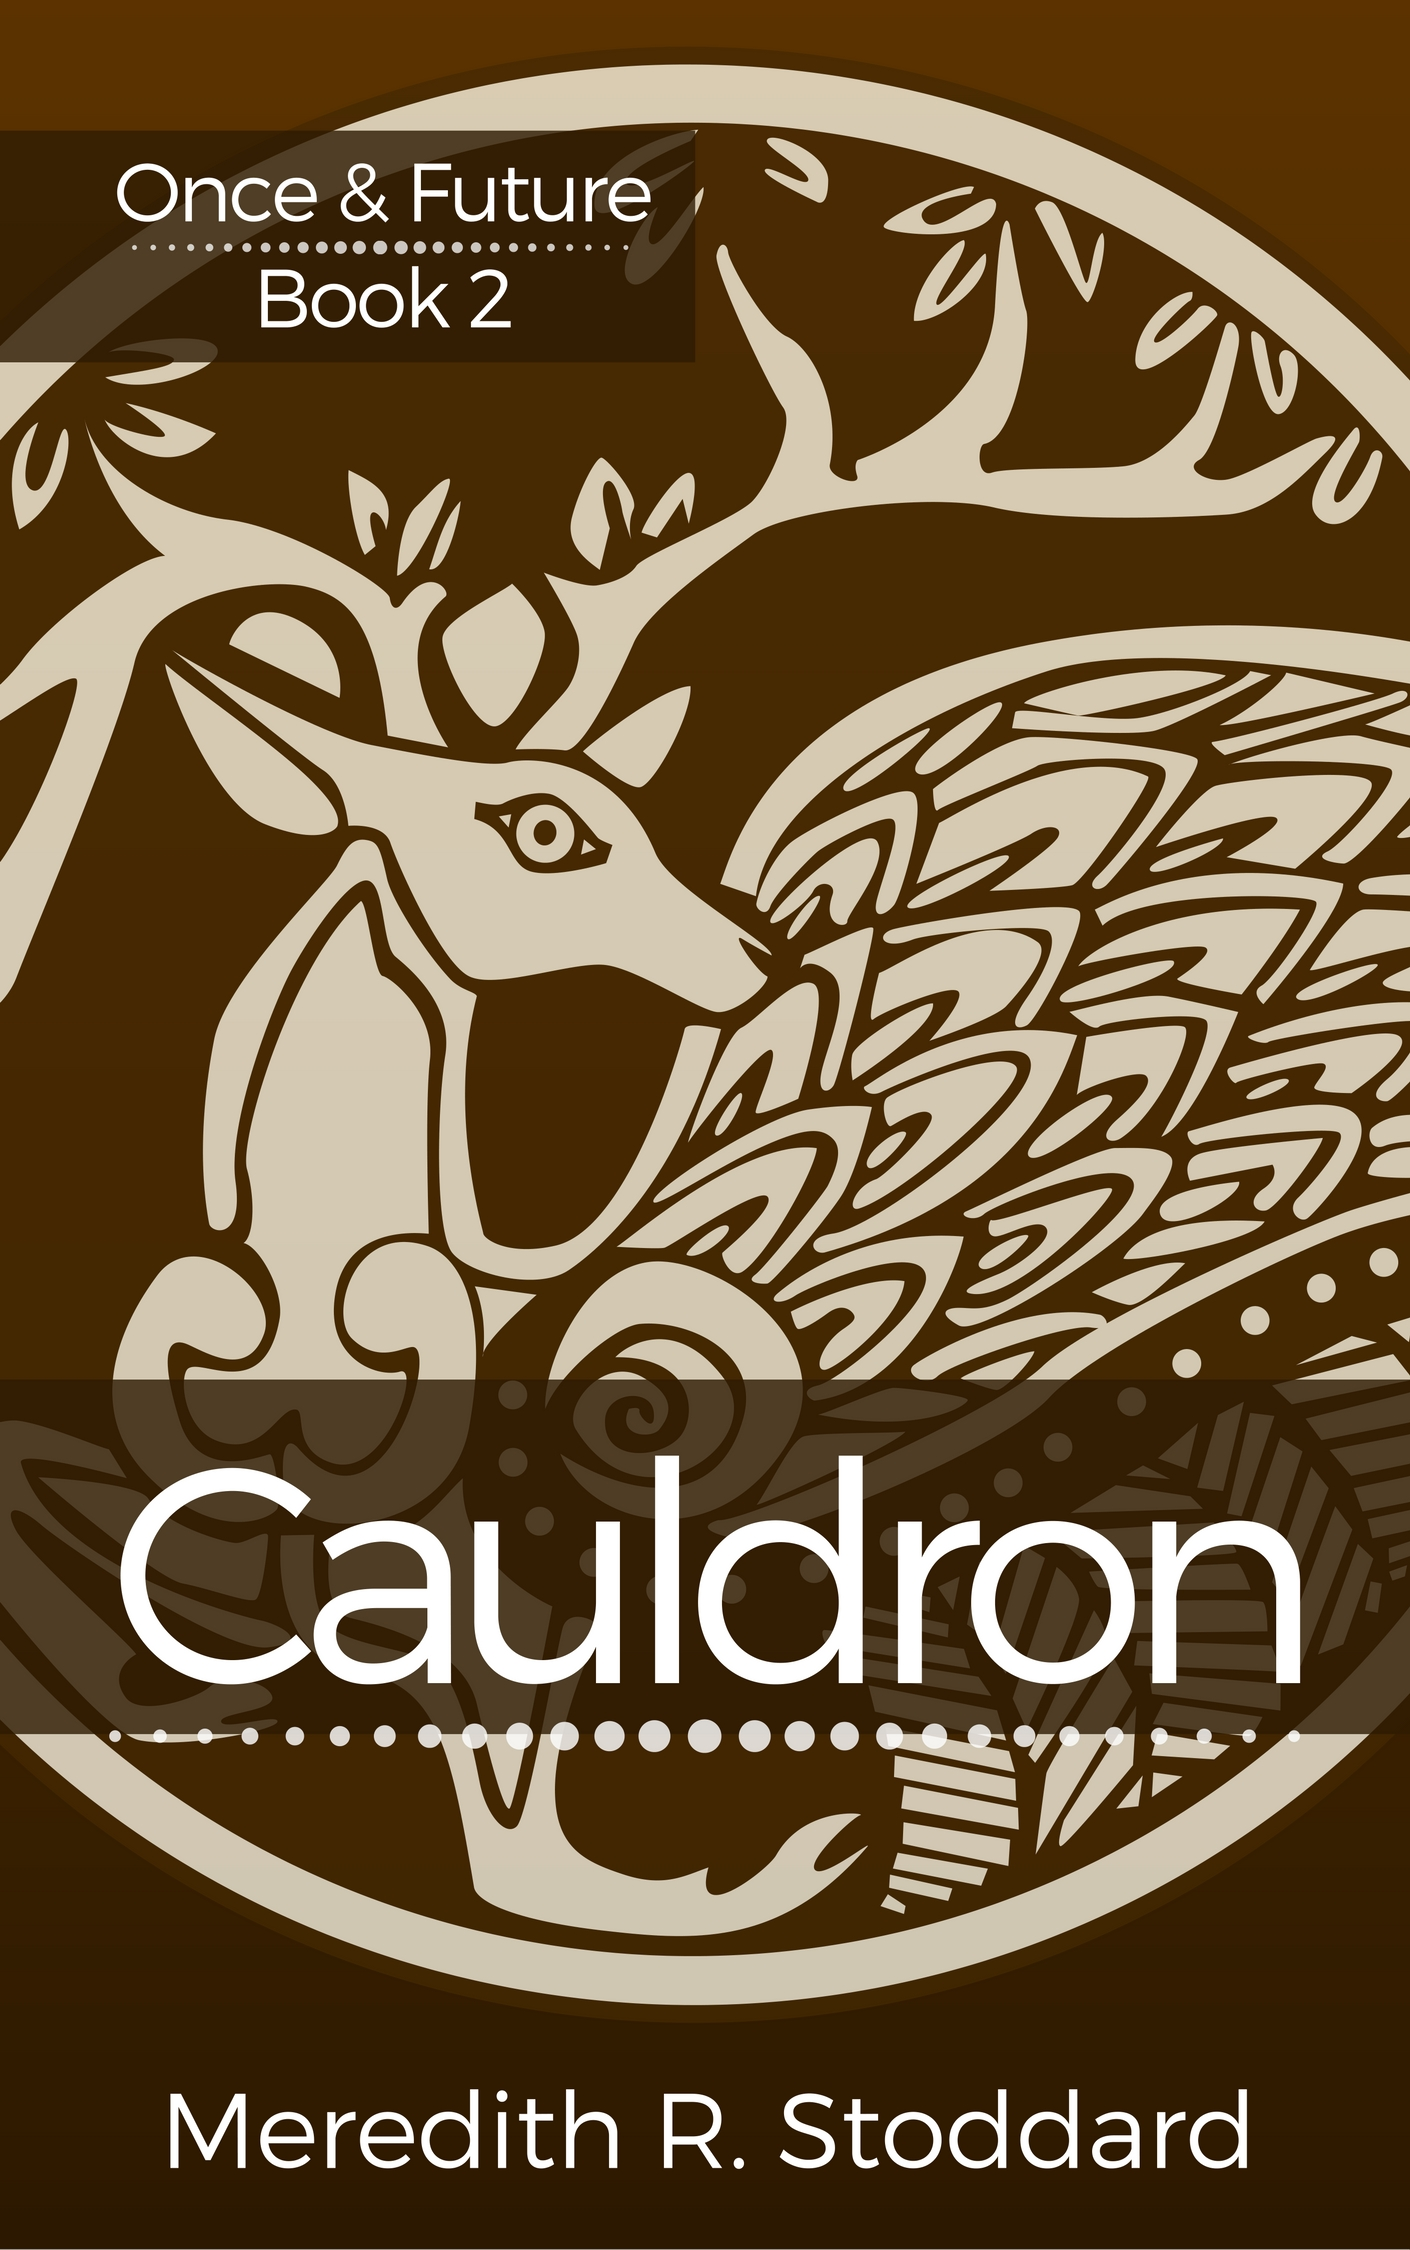 Cauldron (3).jpg